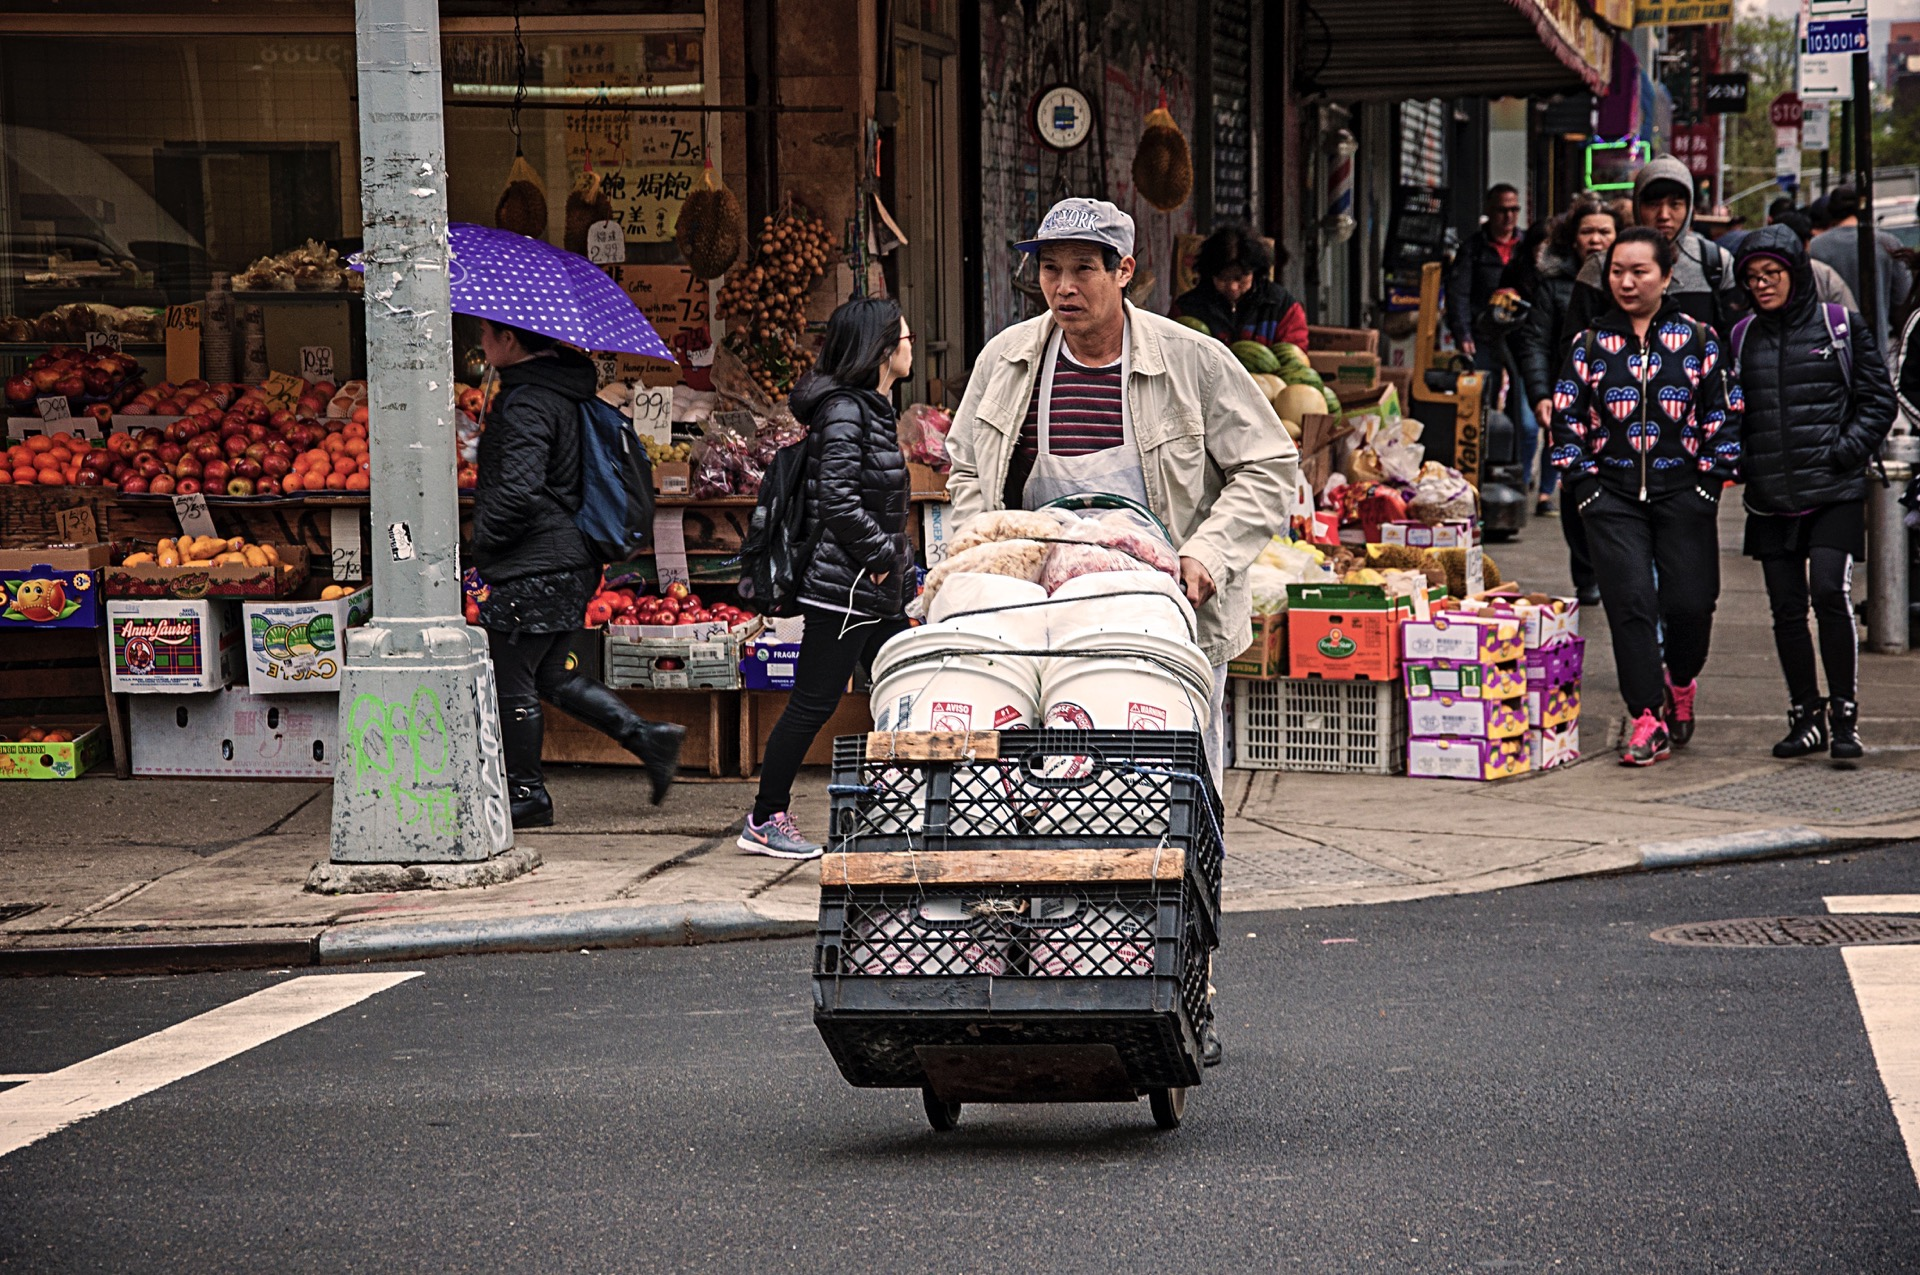 Working in Chinatown by Pablo Peña